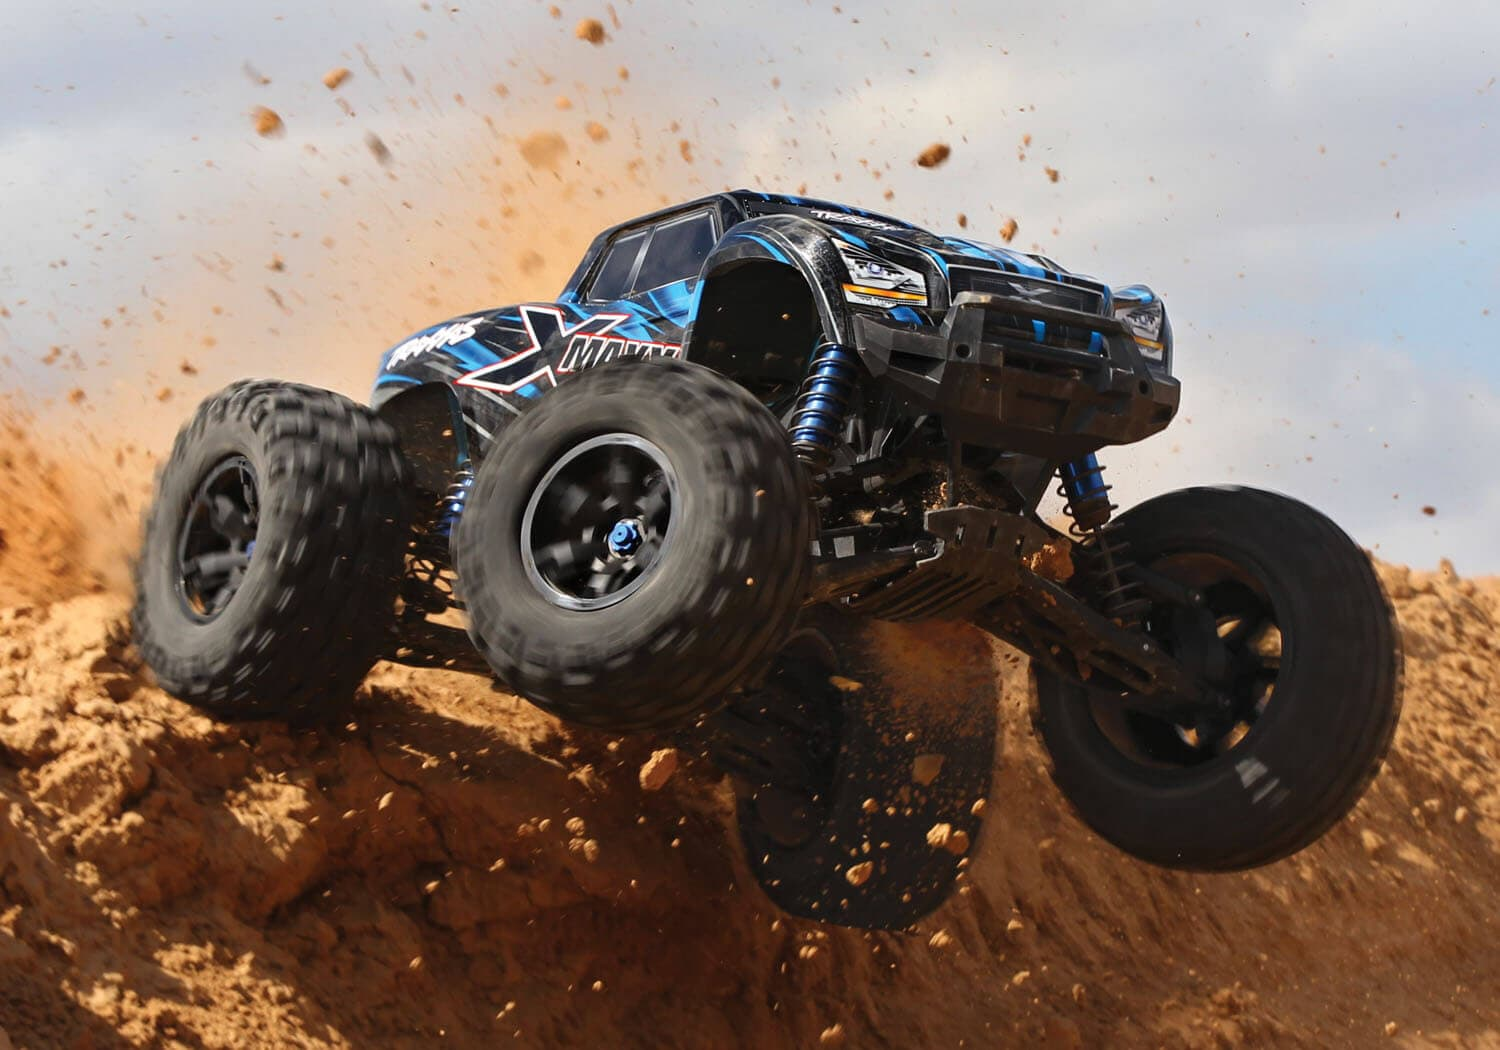 Traxxas Rocks the R/C World with X-Maxx